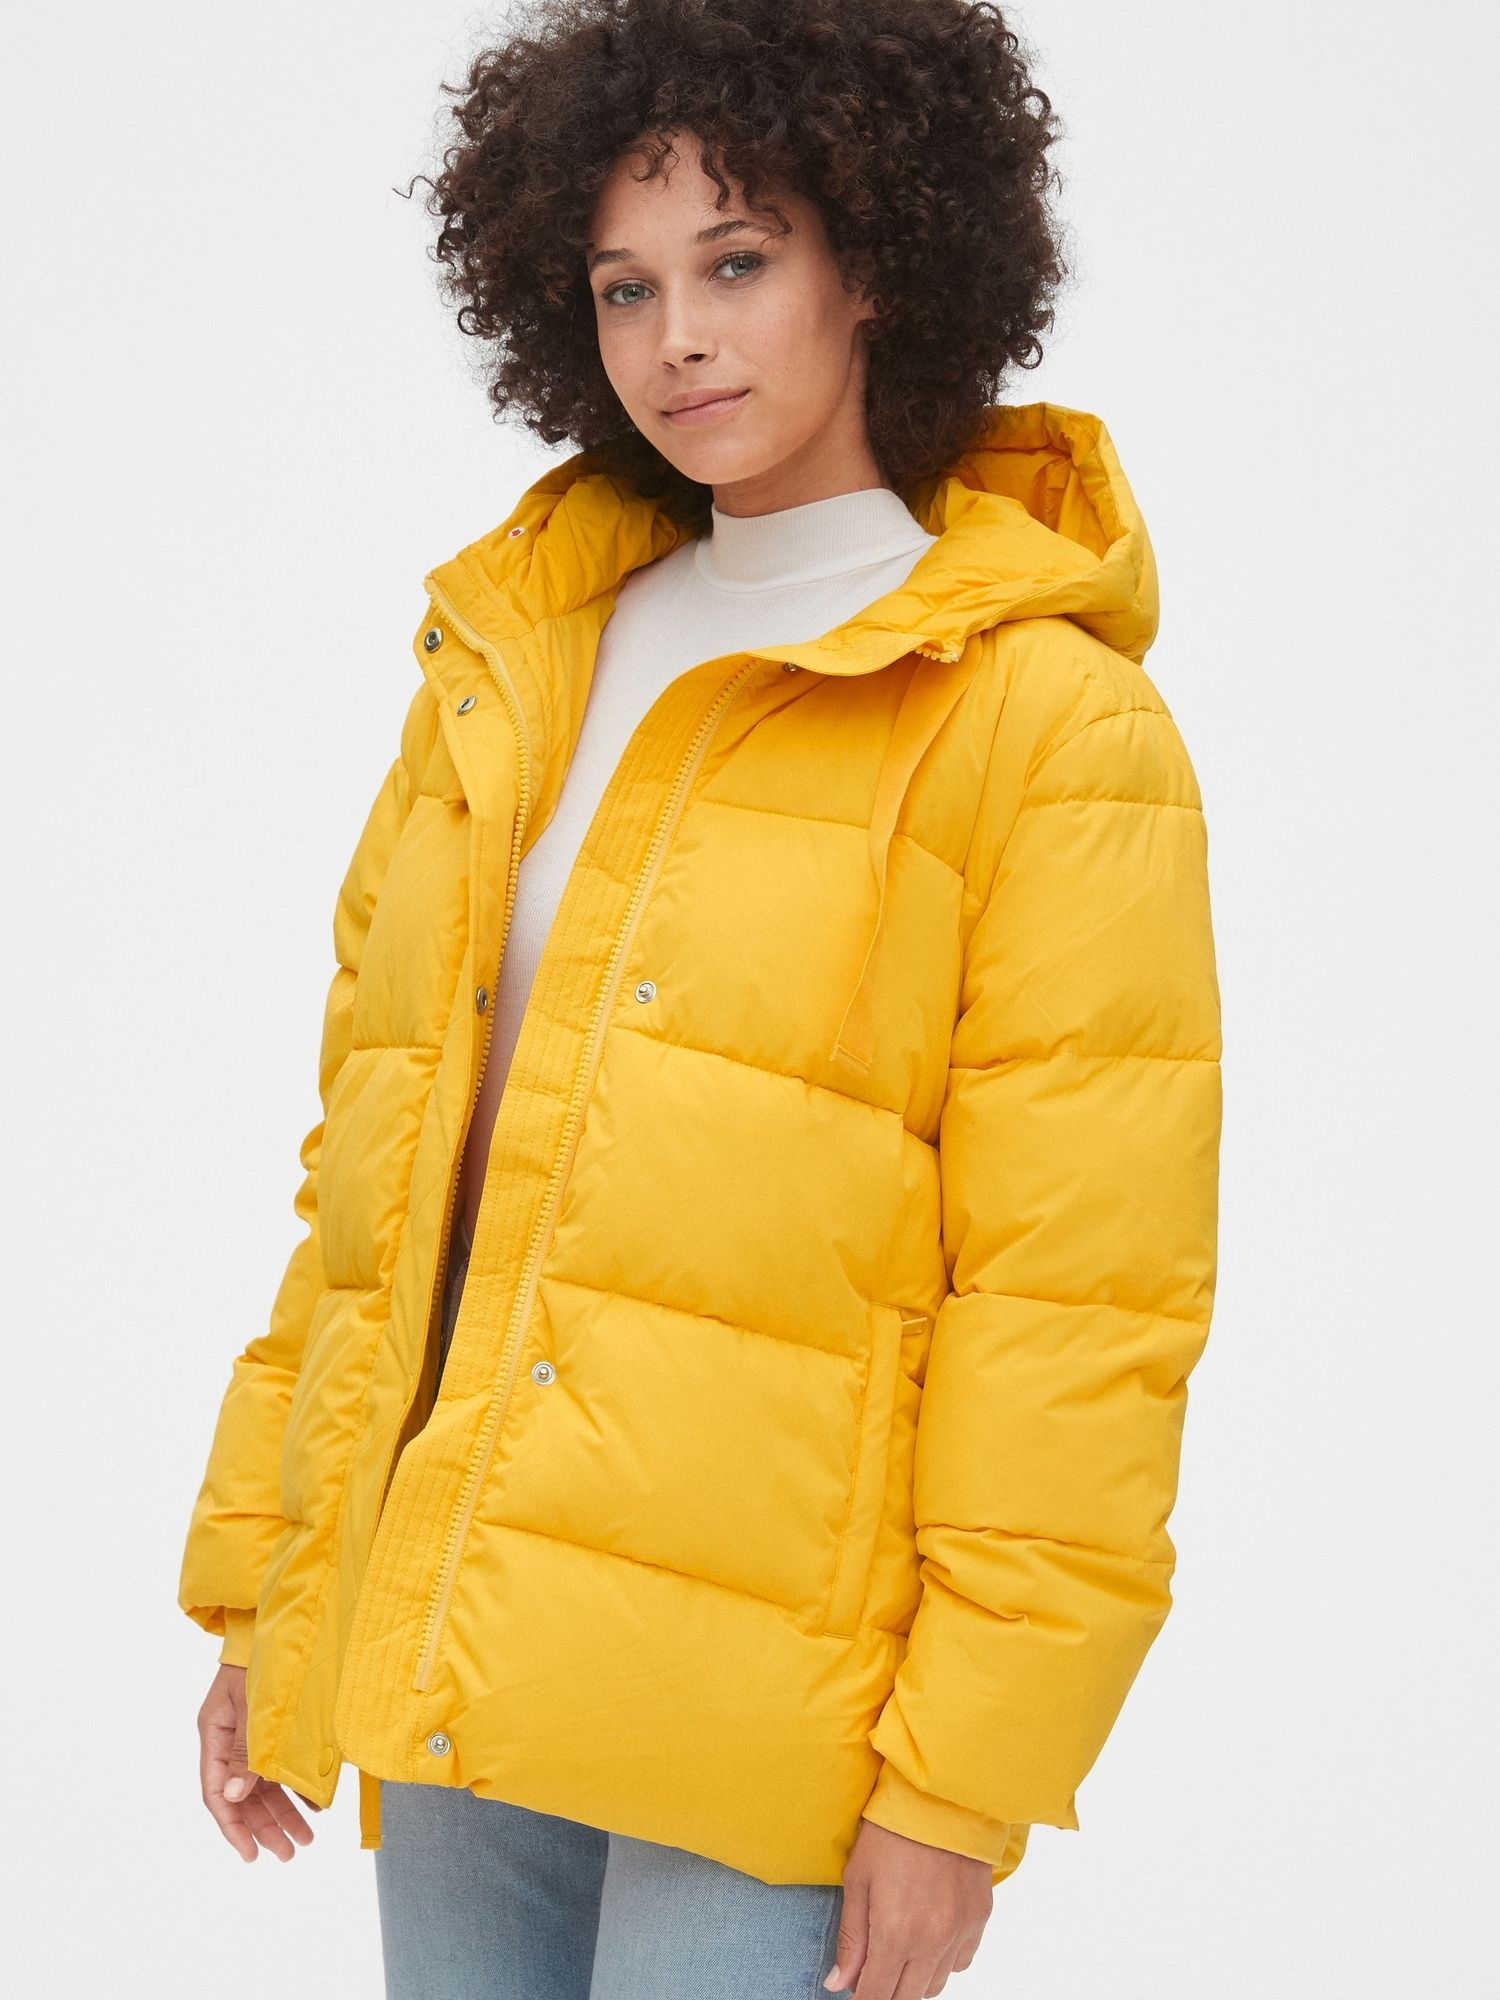 The Upcycled Puffer Gap Yellow Puffer Jacket Coats Jackets Women Puffer Jacket Women [ 2000 x 1500 Pixel ]